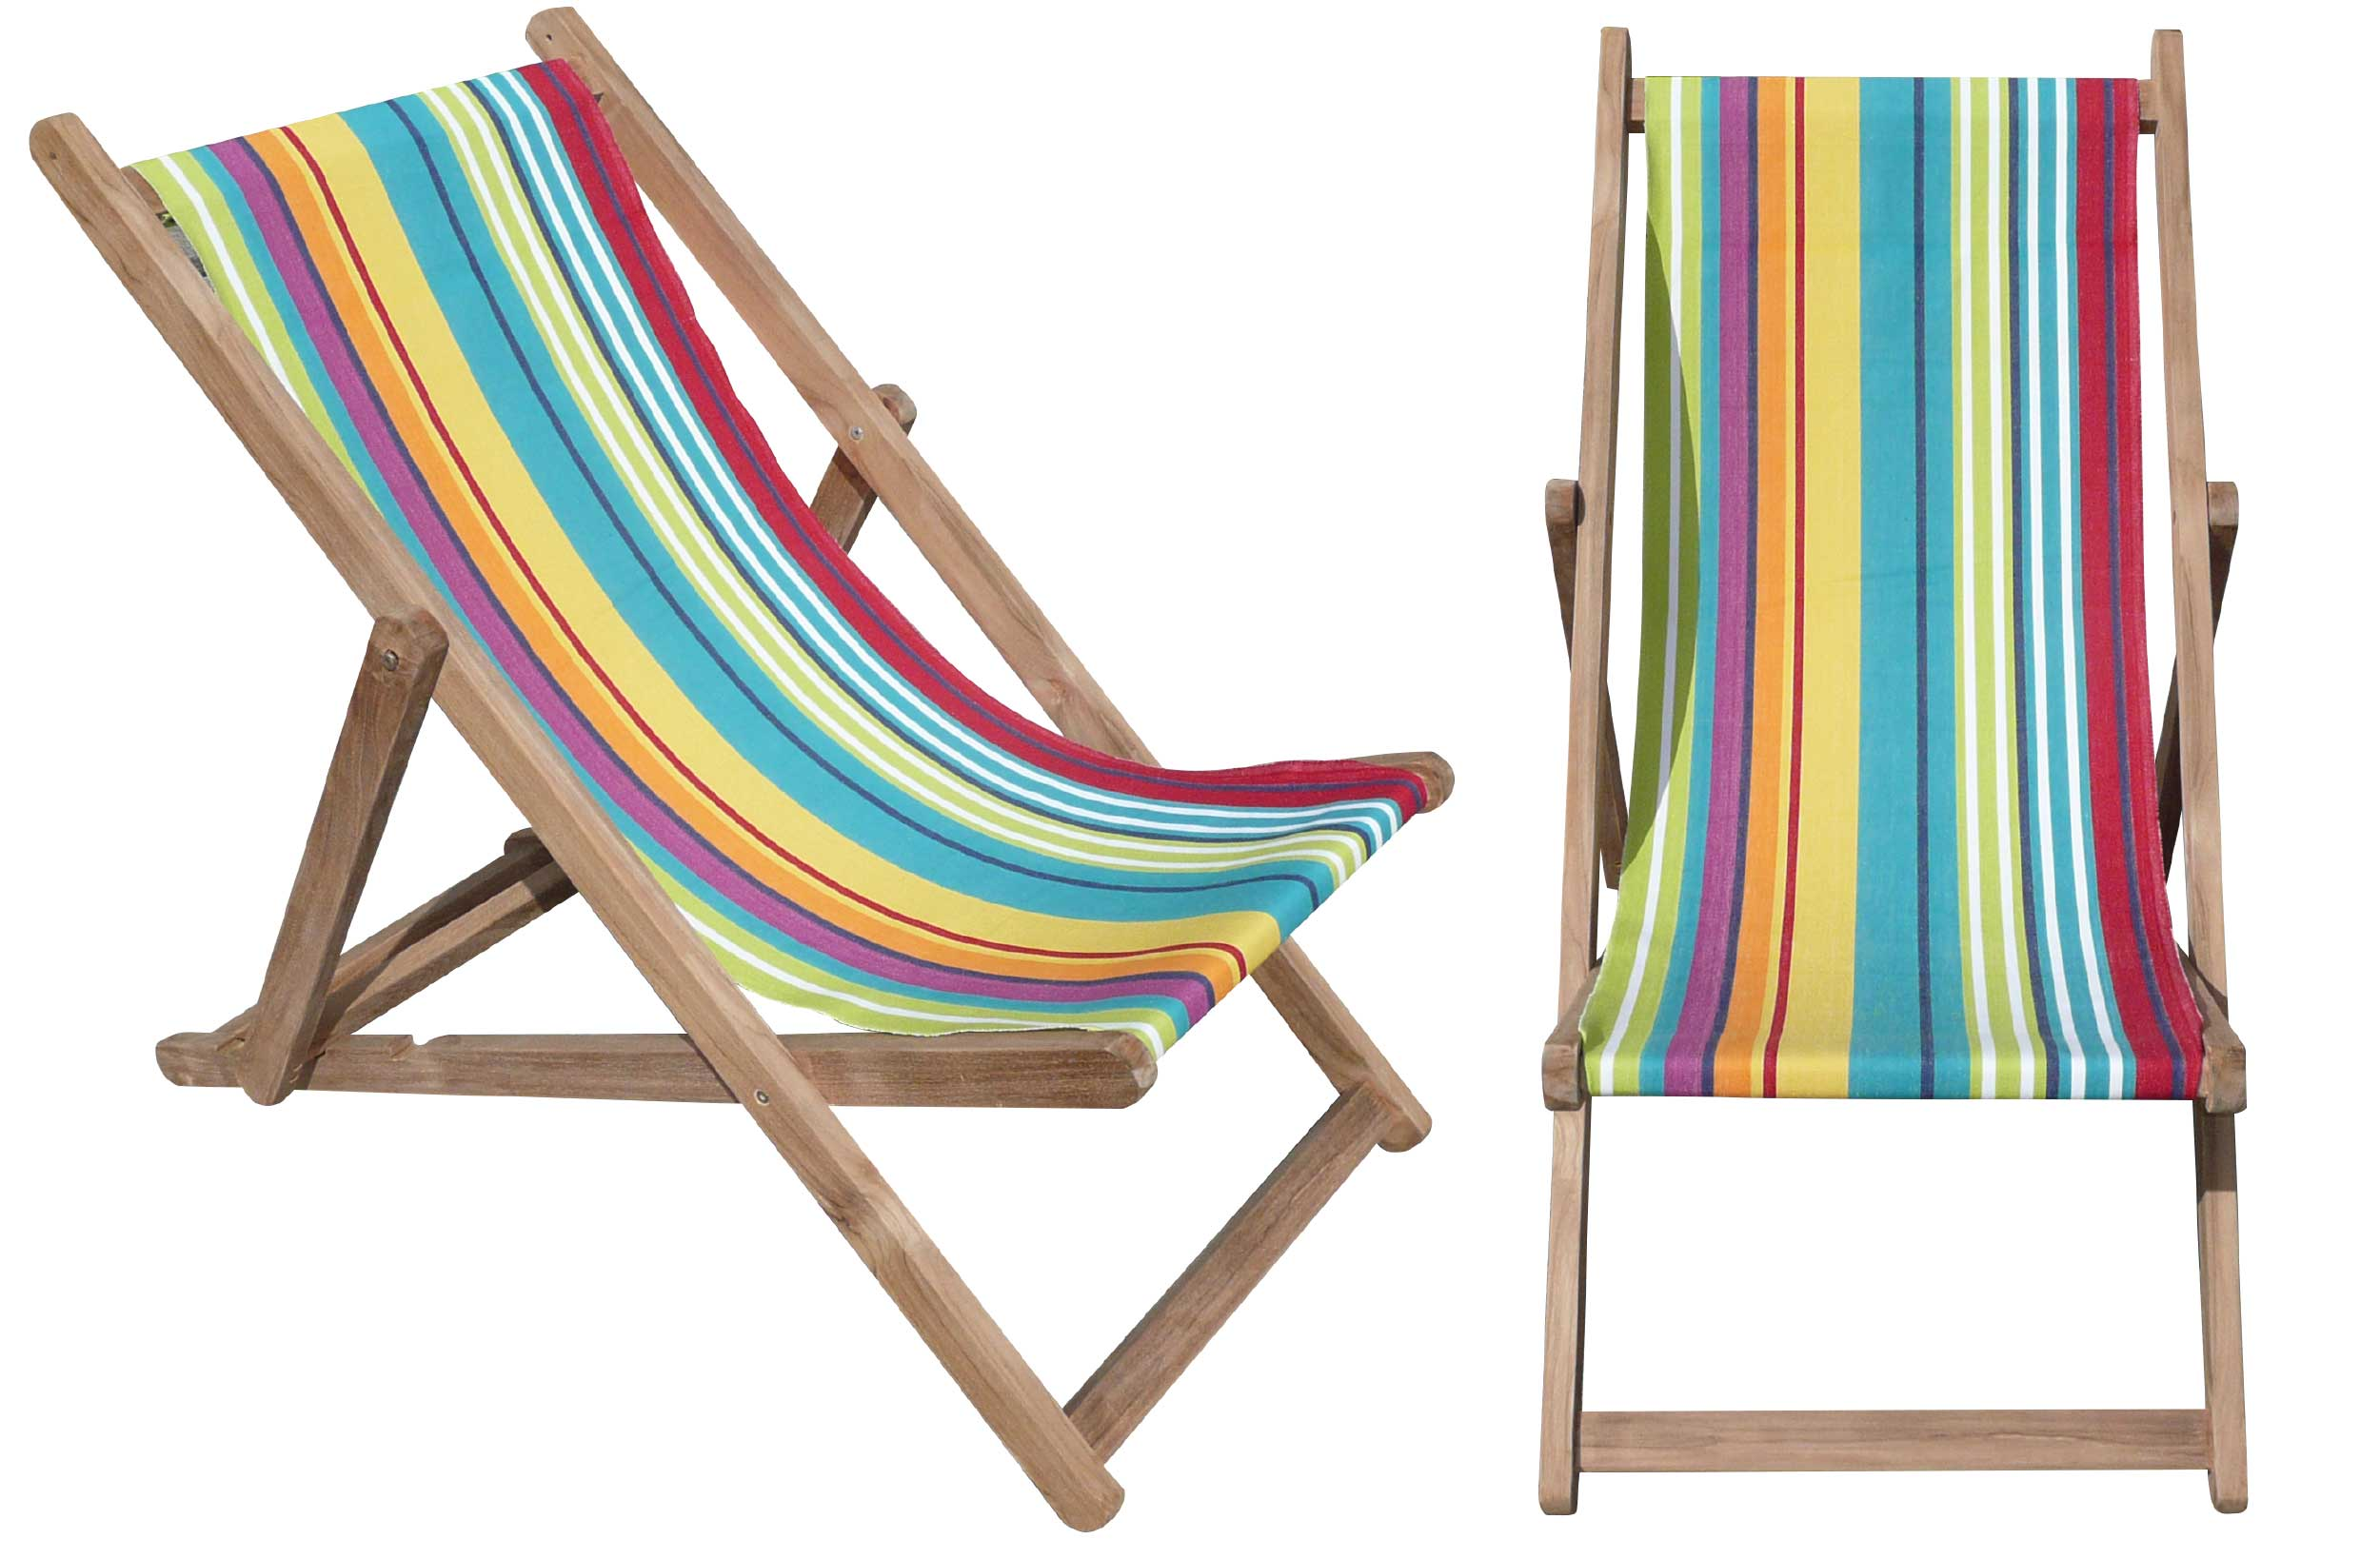 Turquoise Deckchairs | Wooden Folding Deck Chairs Aerobics Stripes